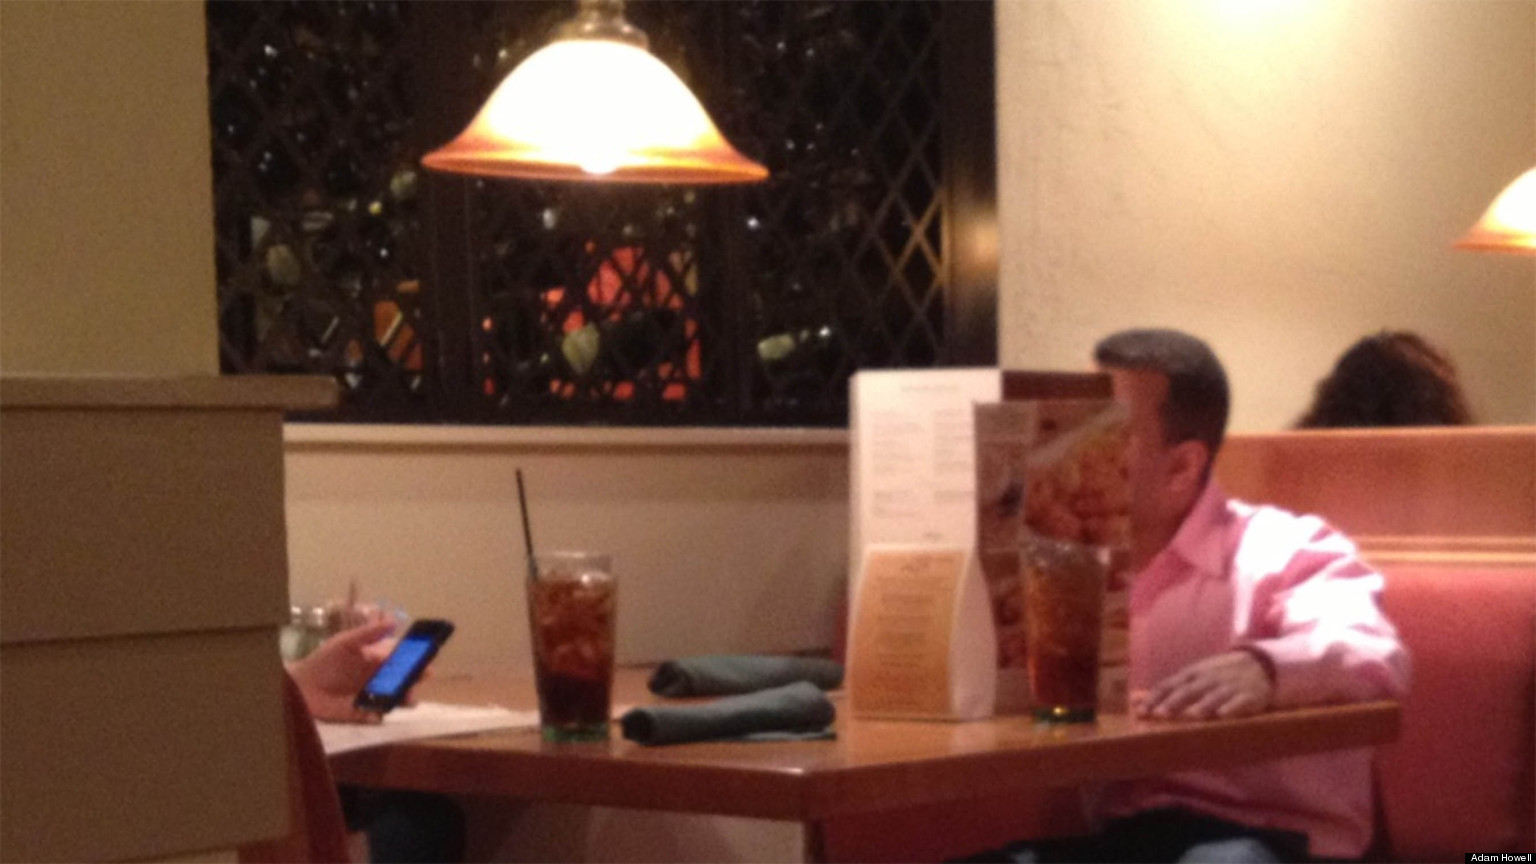 LOOK: This Is Possibly The Worst Dinner Date EVER